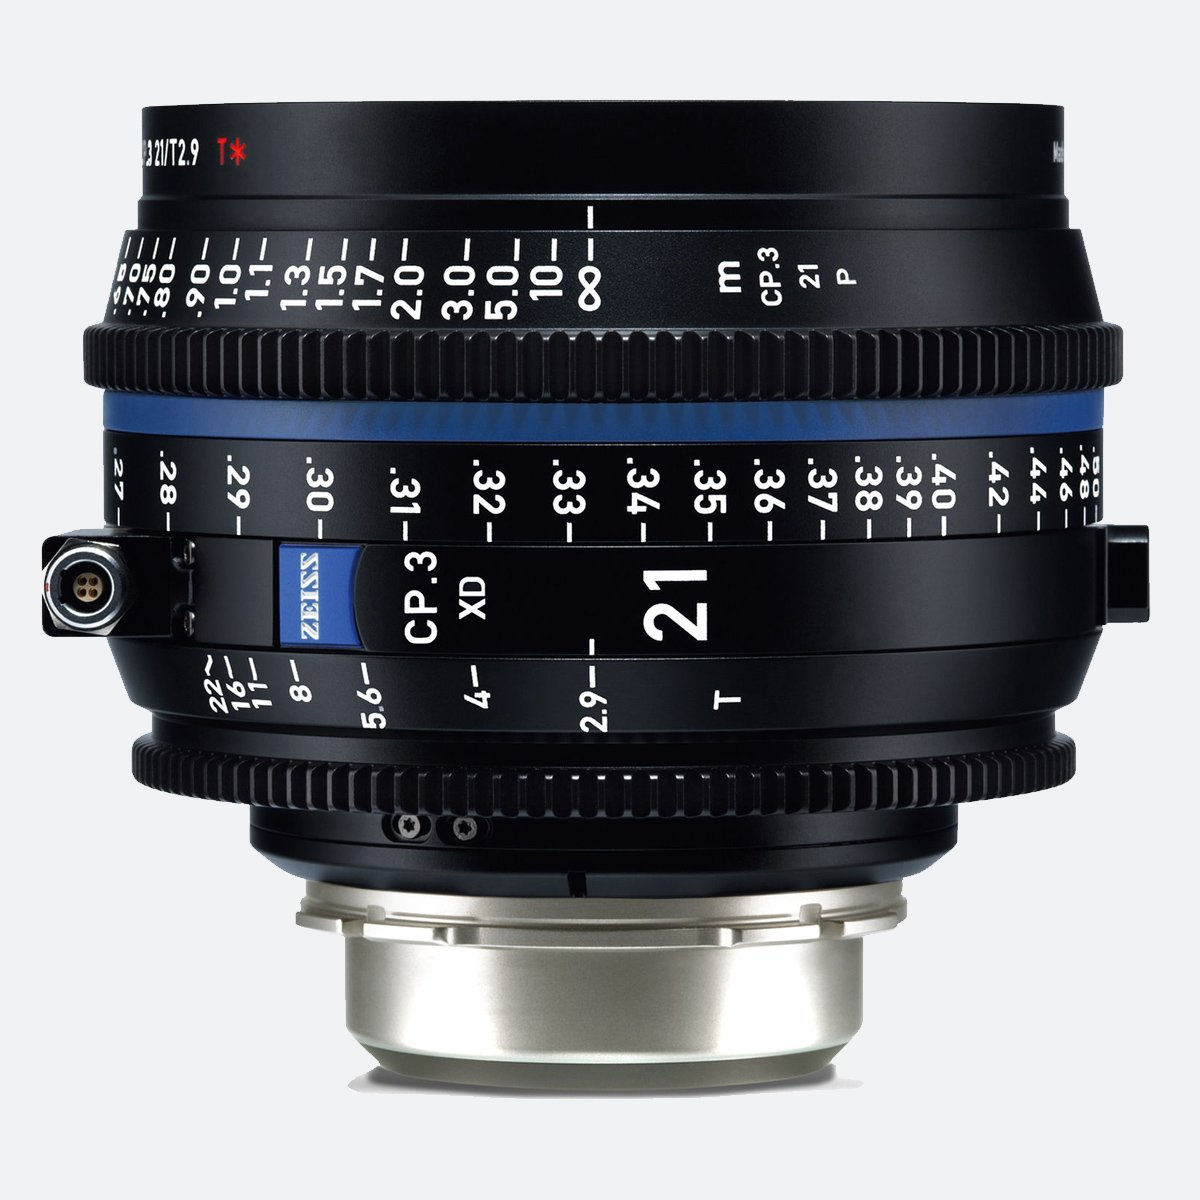 Zeiss CP.3 XD 21mm T/2.9 Compact Prime Cine Lens